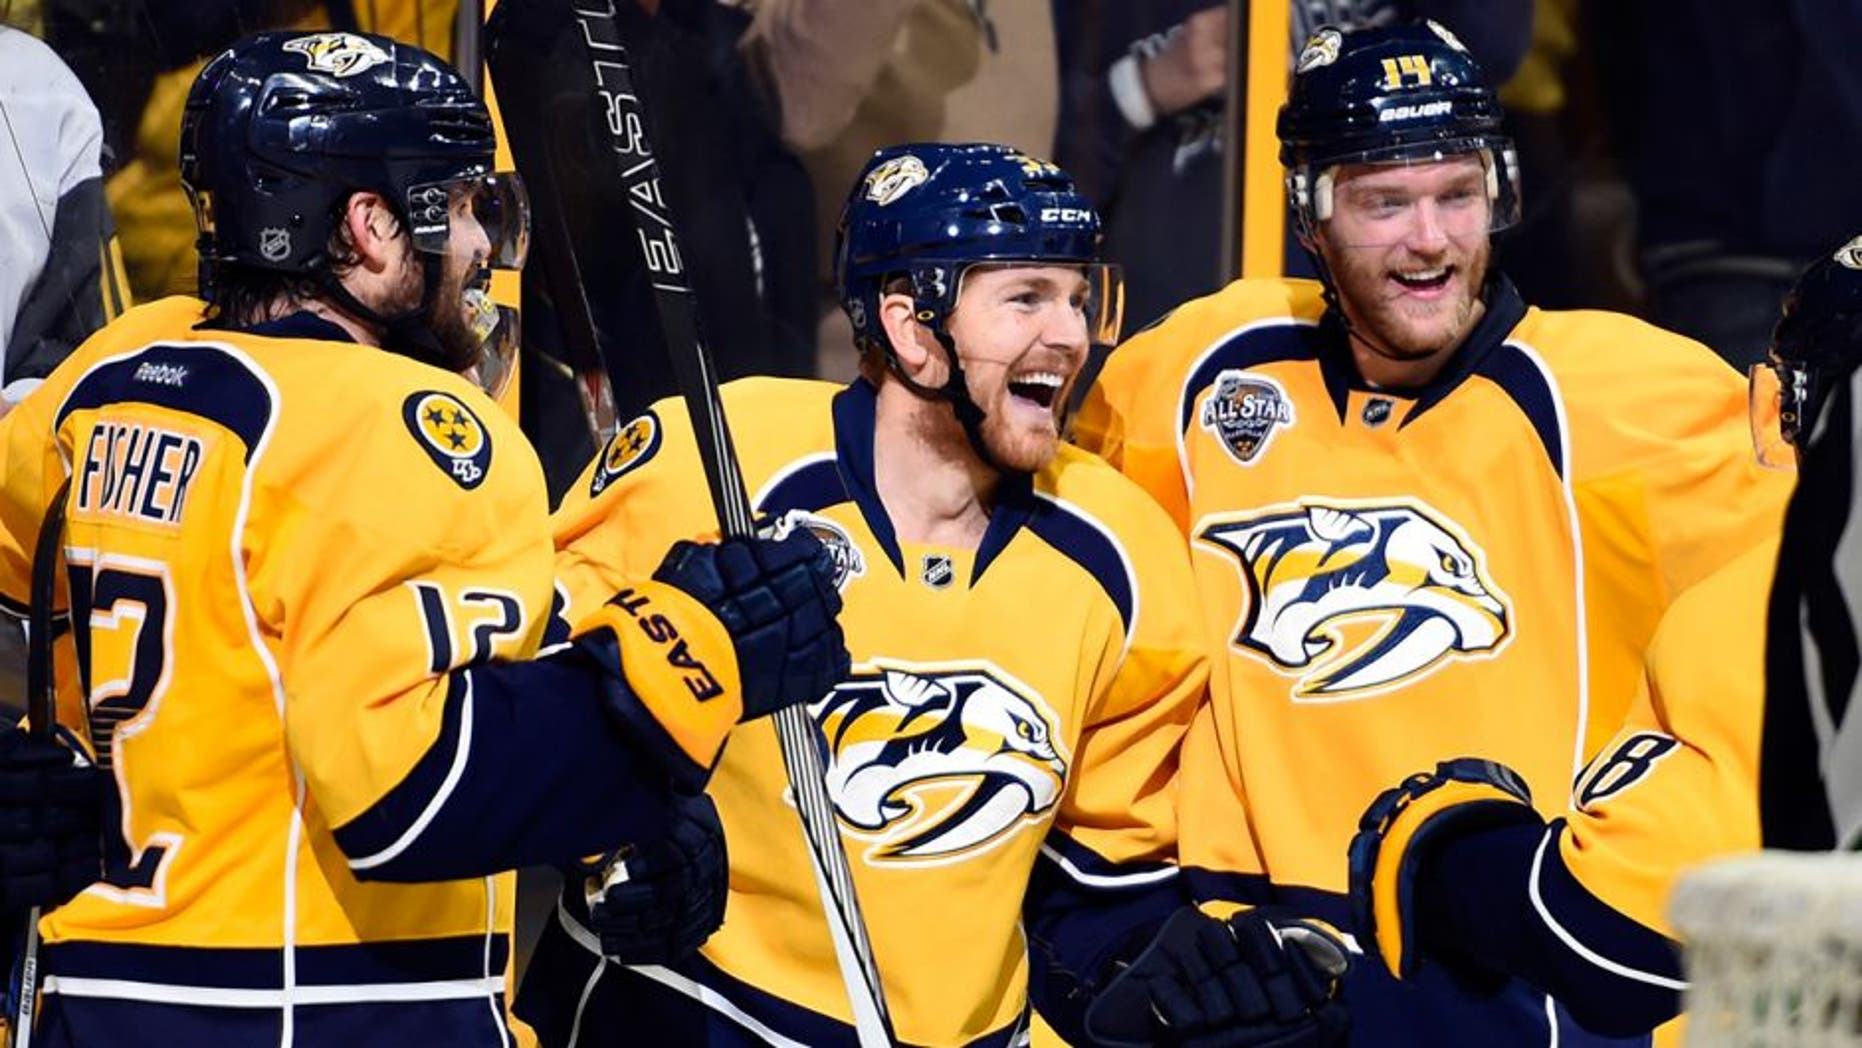 May 3, 2016; Nashville, TN, USA; Nashville Predators players celebrate after a goal left winger Colin Wilson (33) during the third period against the San Jose Sharks in game three of the second round of the 2016 Stanley Cup Playoffs at Bridgestone Arena. Mandatory Credit: Christopher Hanewinckel-USA TODAY Sports